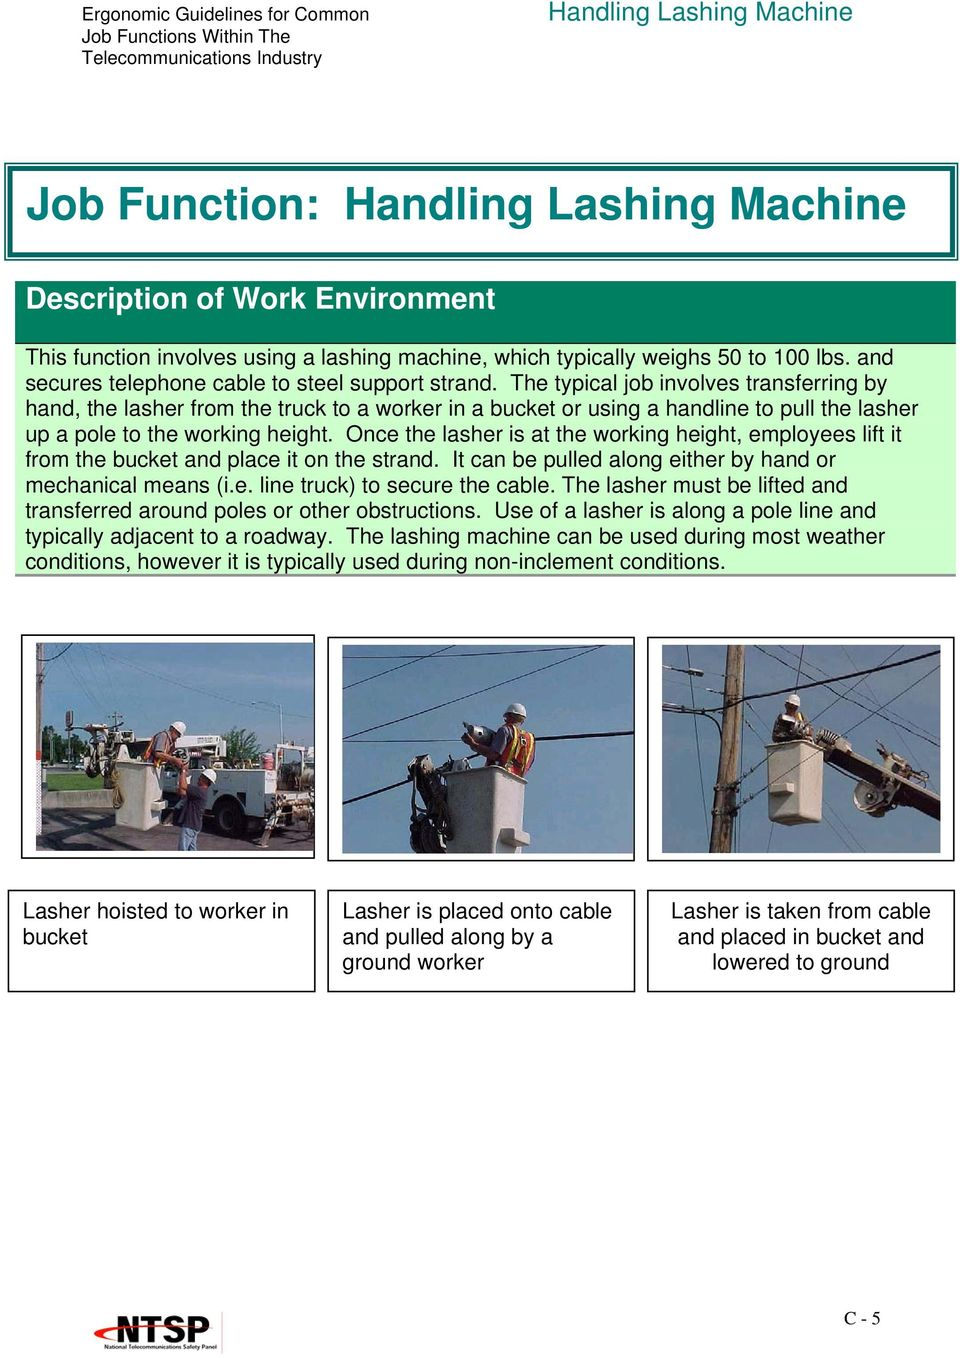 The typical job involves transferring by hand, the lasher from the truck to a worker in a bucket or using a handline to pull the lasher up a pole to the working height.